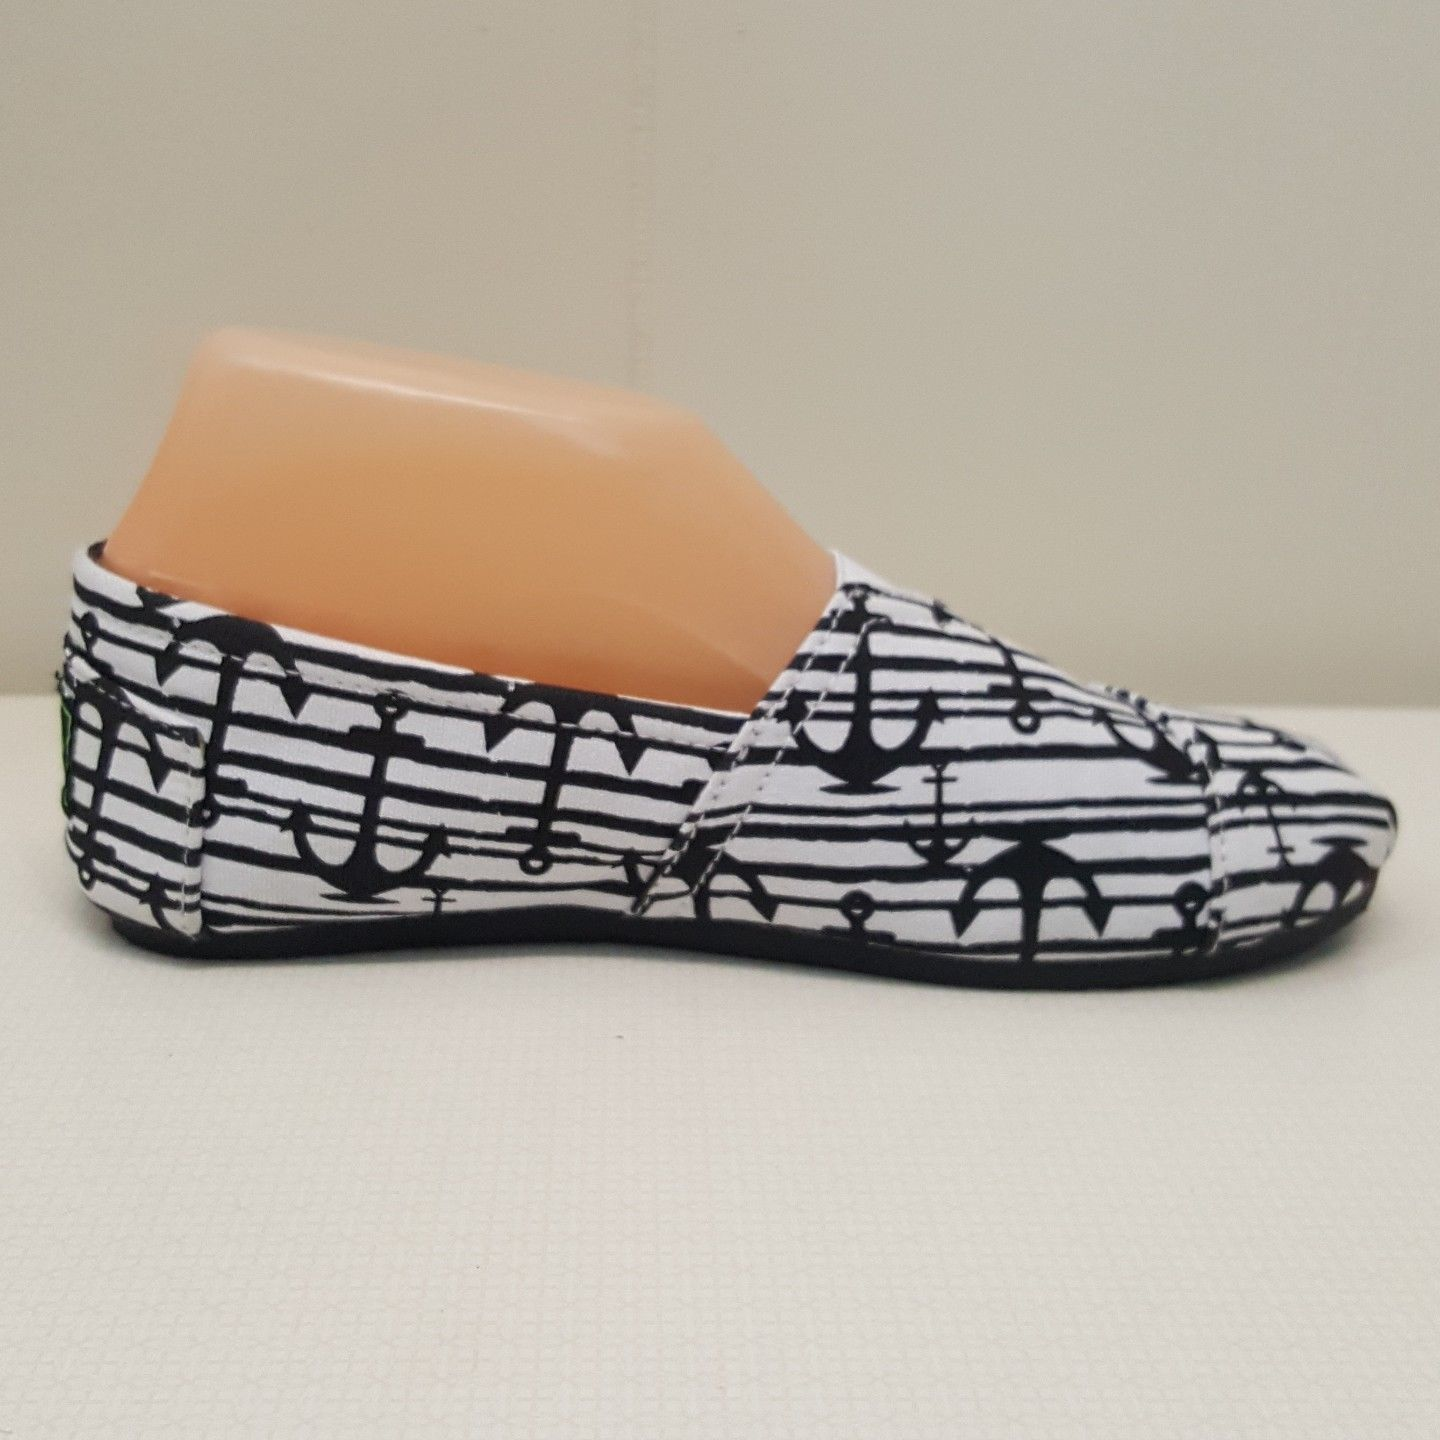 Dawgs 7 Loafers Flats Canvas Boat Shoes Espradille Black White Anchors Nautical